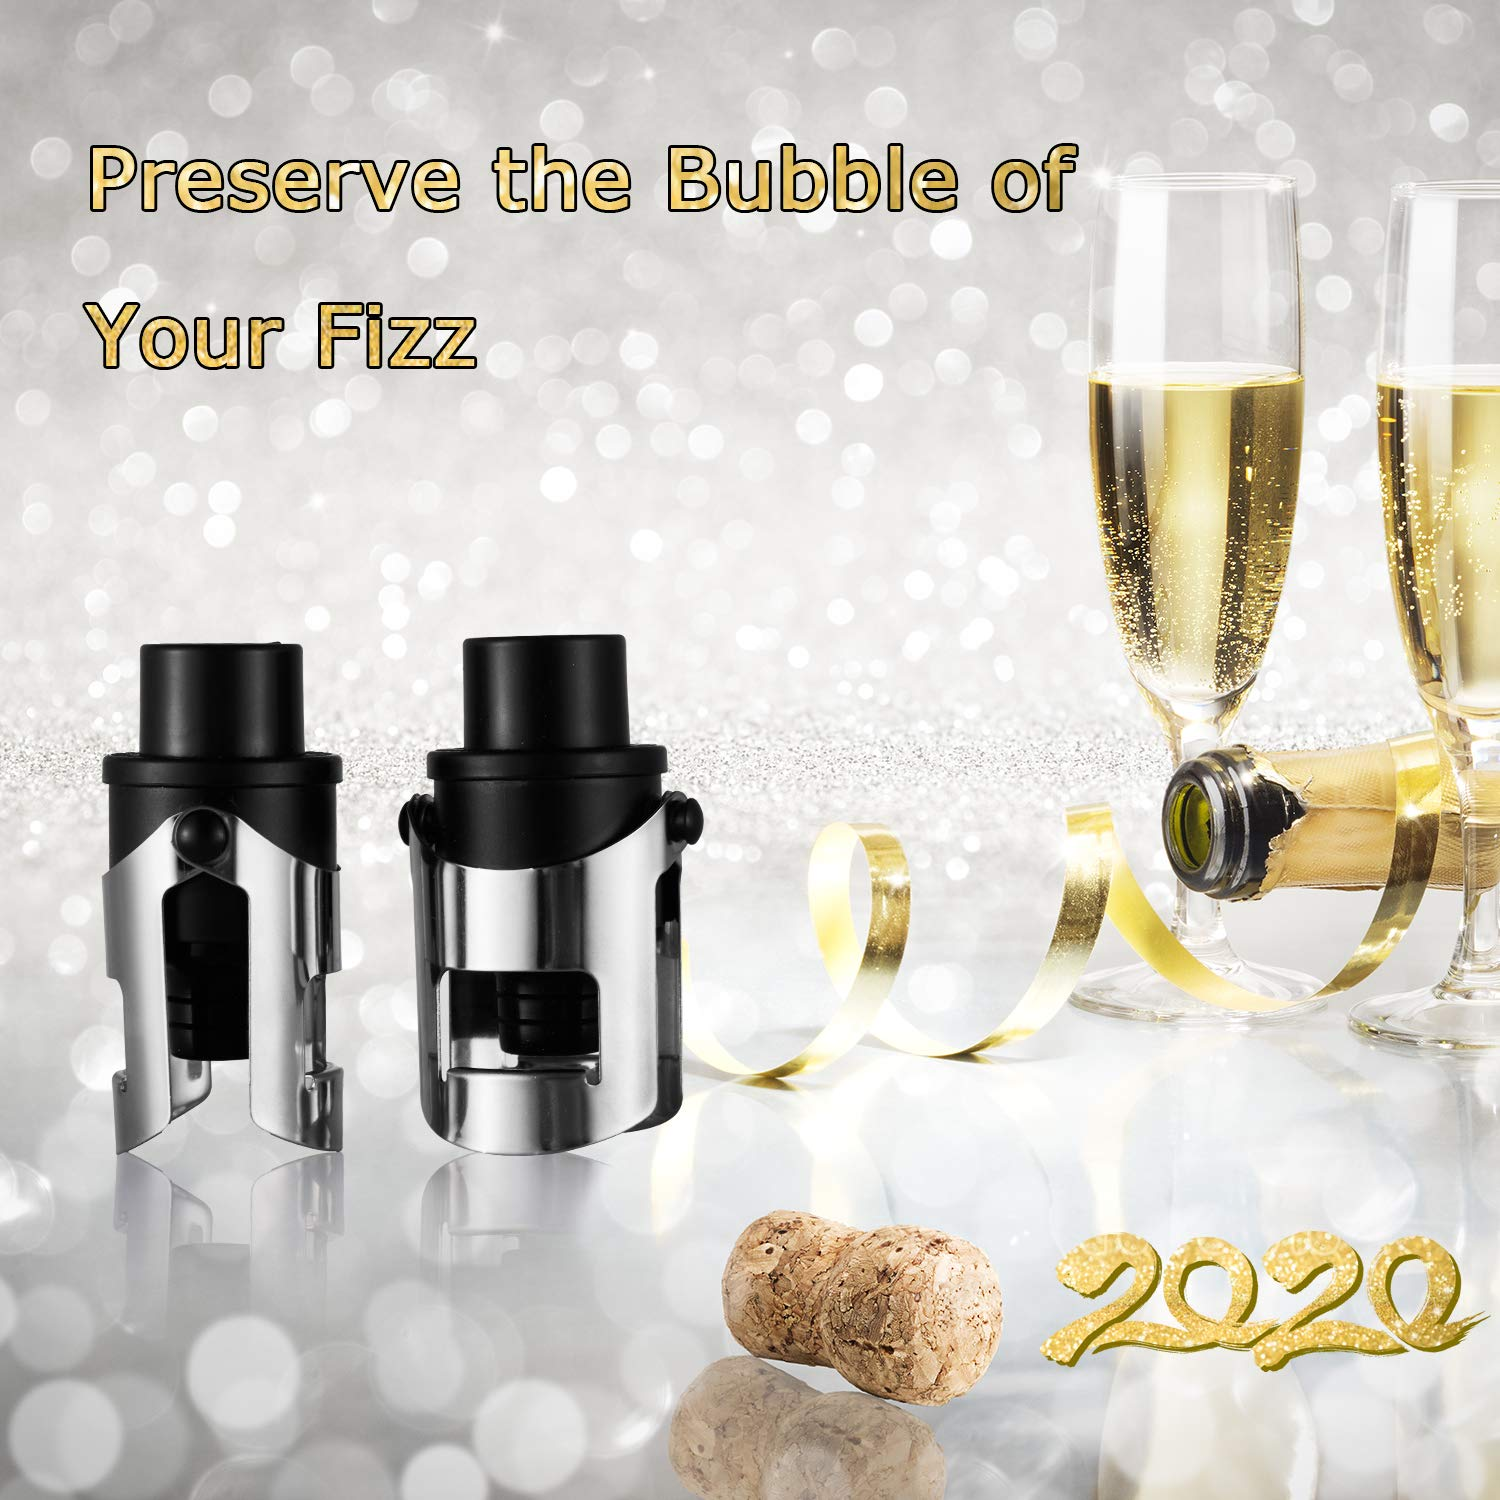 Cava Professional Bottle Sealer for Champagne Stainless Steel Prosecco /& Sparkling Wine ABS Keep Your Fizz/'s Bubbles Set of 2 Champagne Stopper with Vacuum Champagne Sealer Stopper with Pump